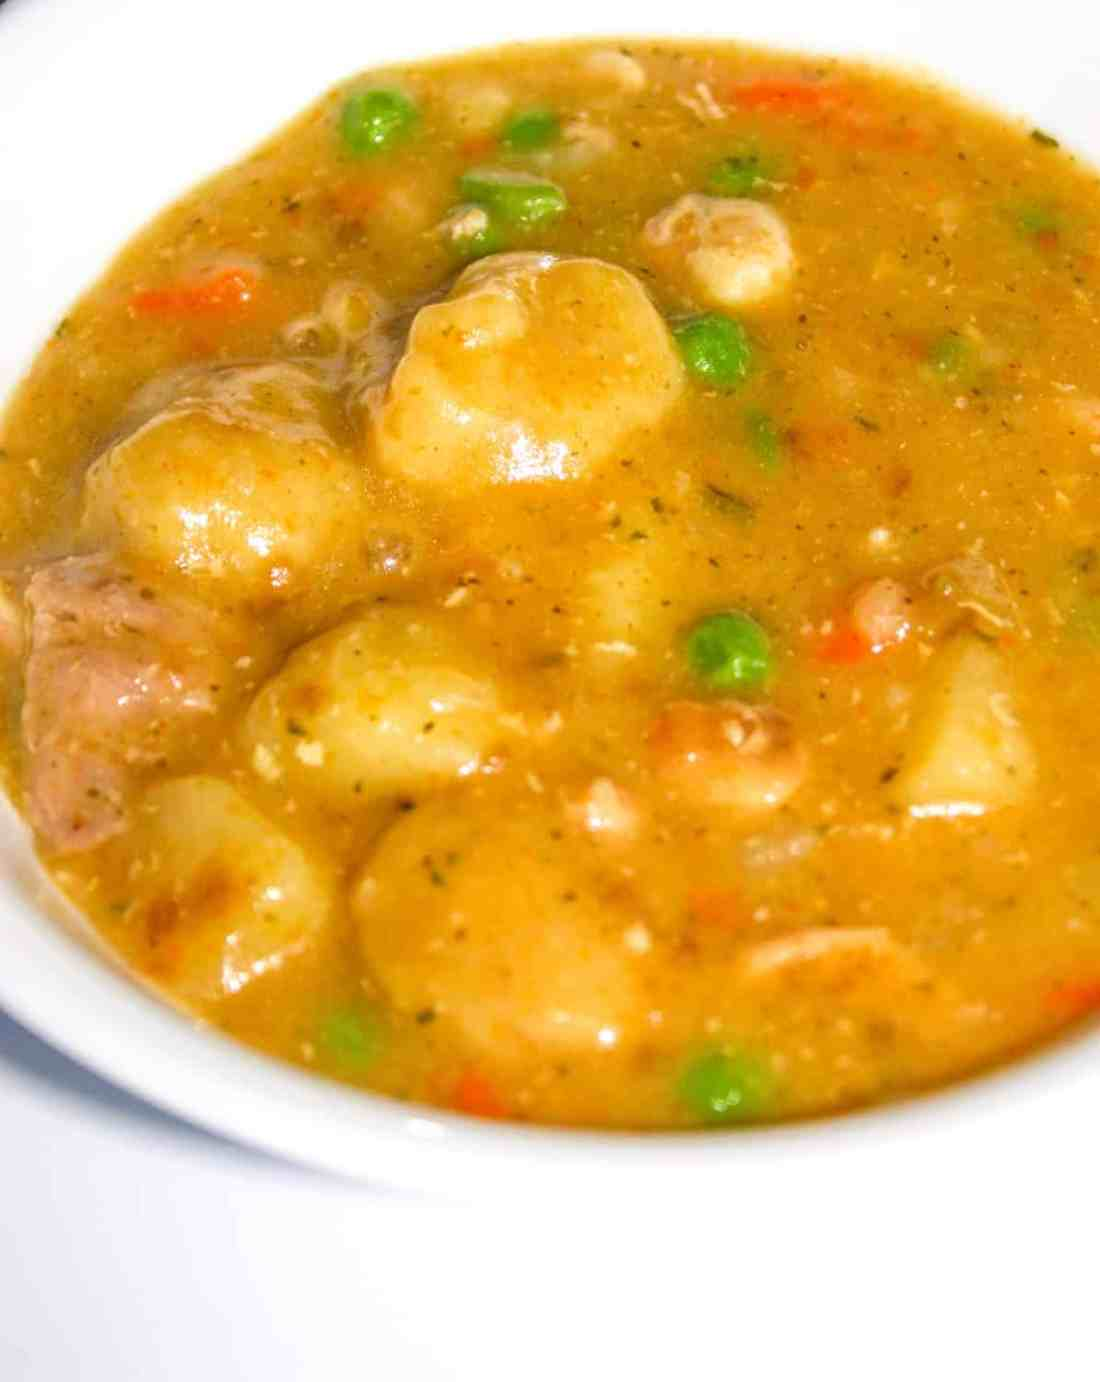 Nothing says comfort food like Chicken and Dumplings! The gluten free dumplings can be made with Bisquick if you have it on hand or from scratch if you do not have Bisquick in the house.